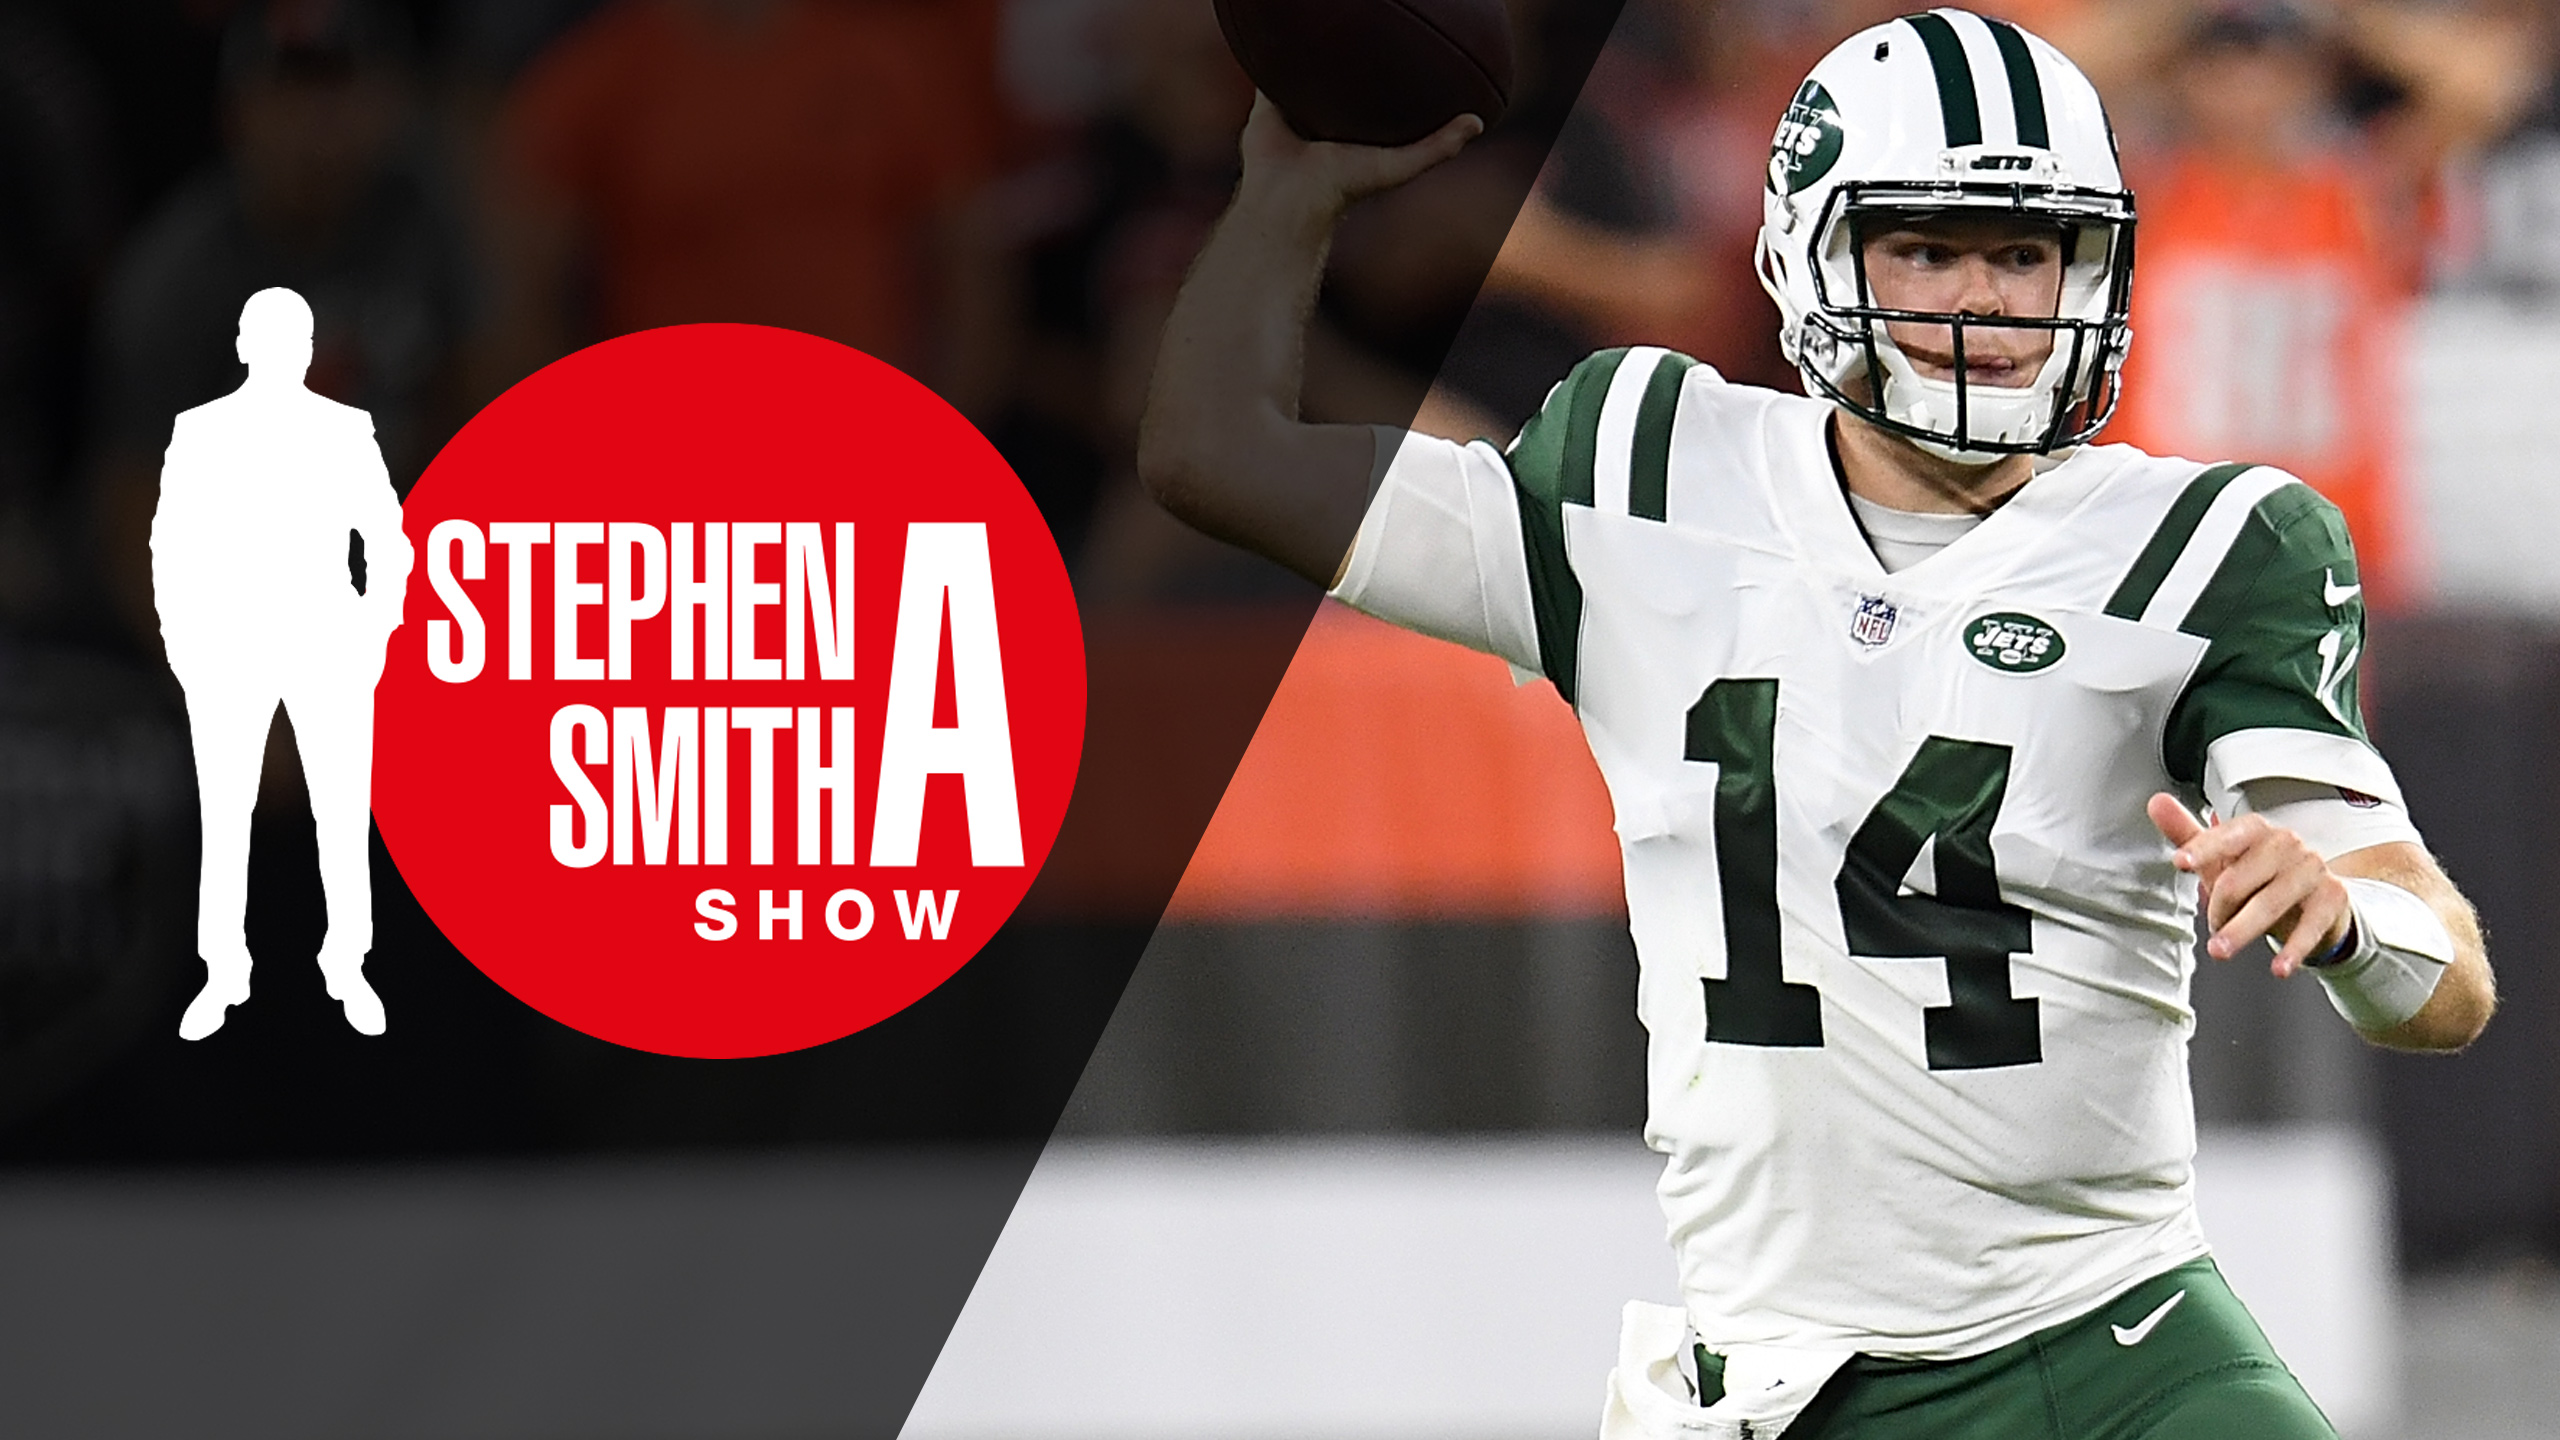 Fri, 9/21 - The Stephen A. Smith Show